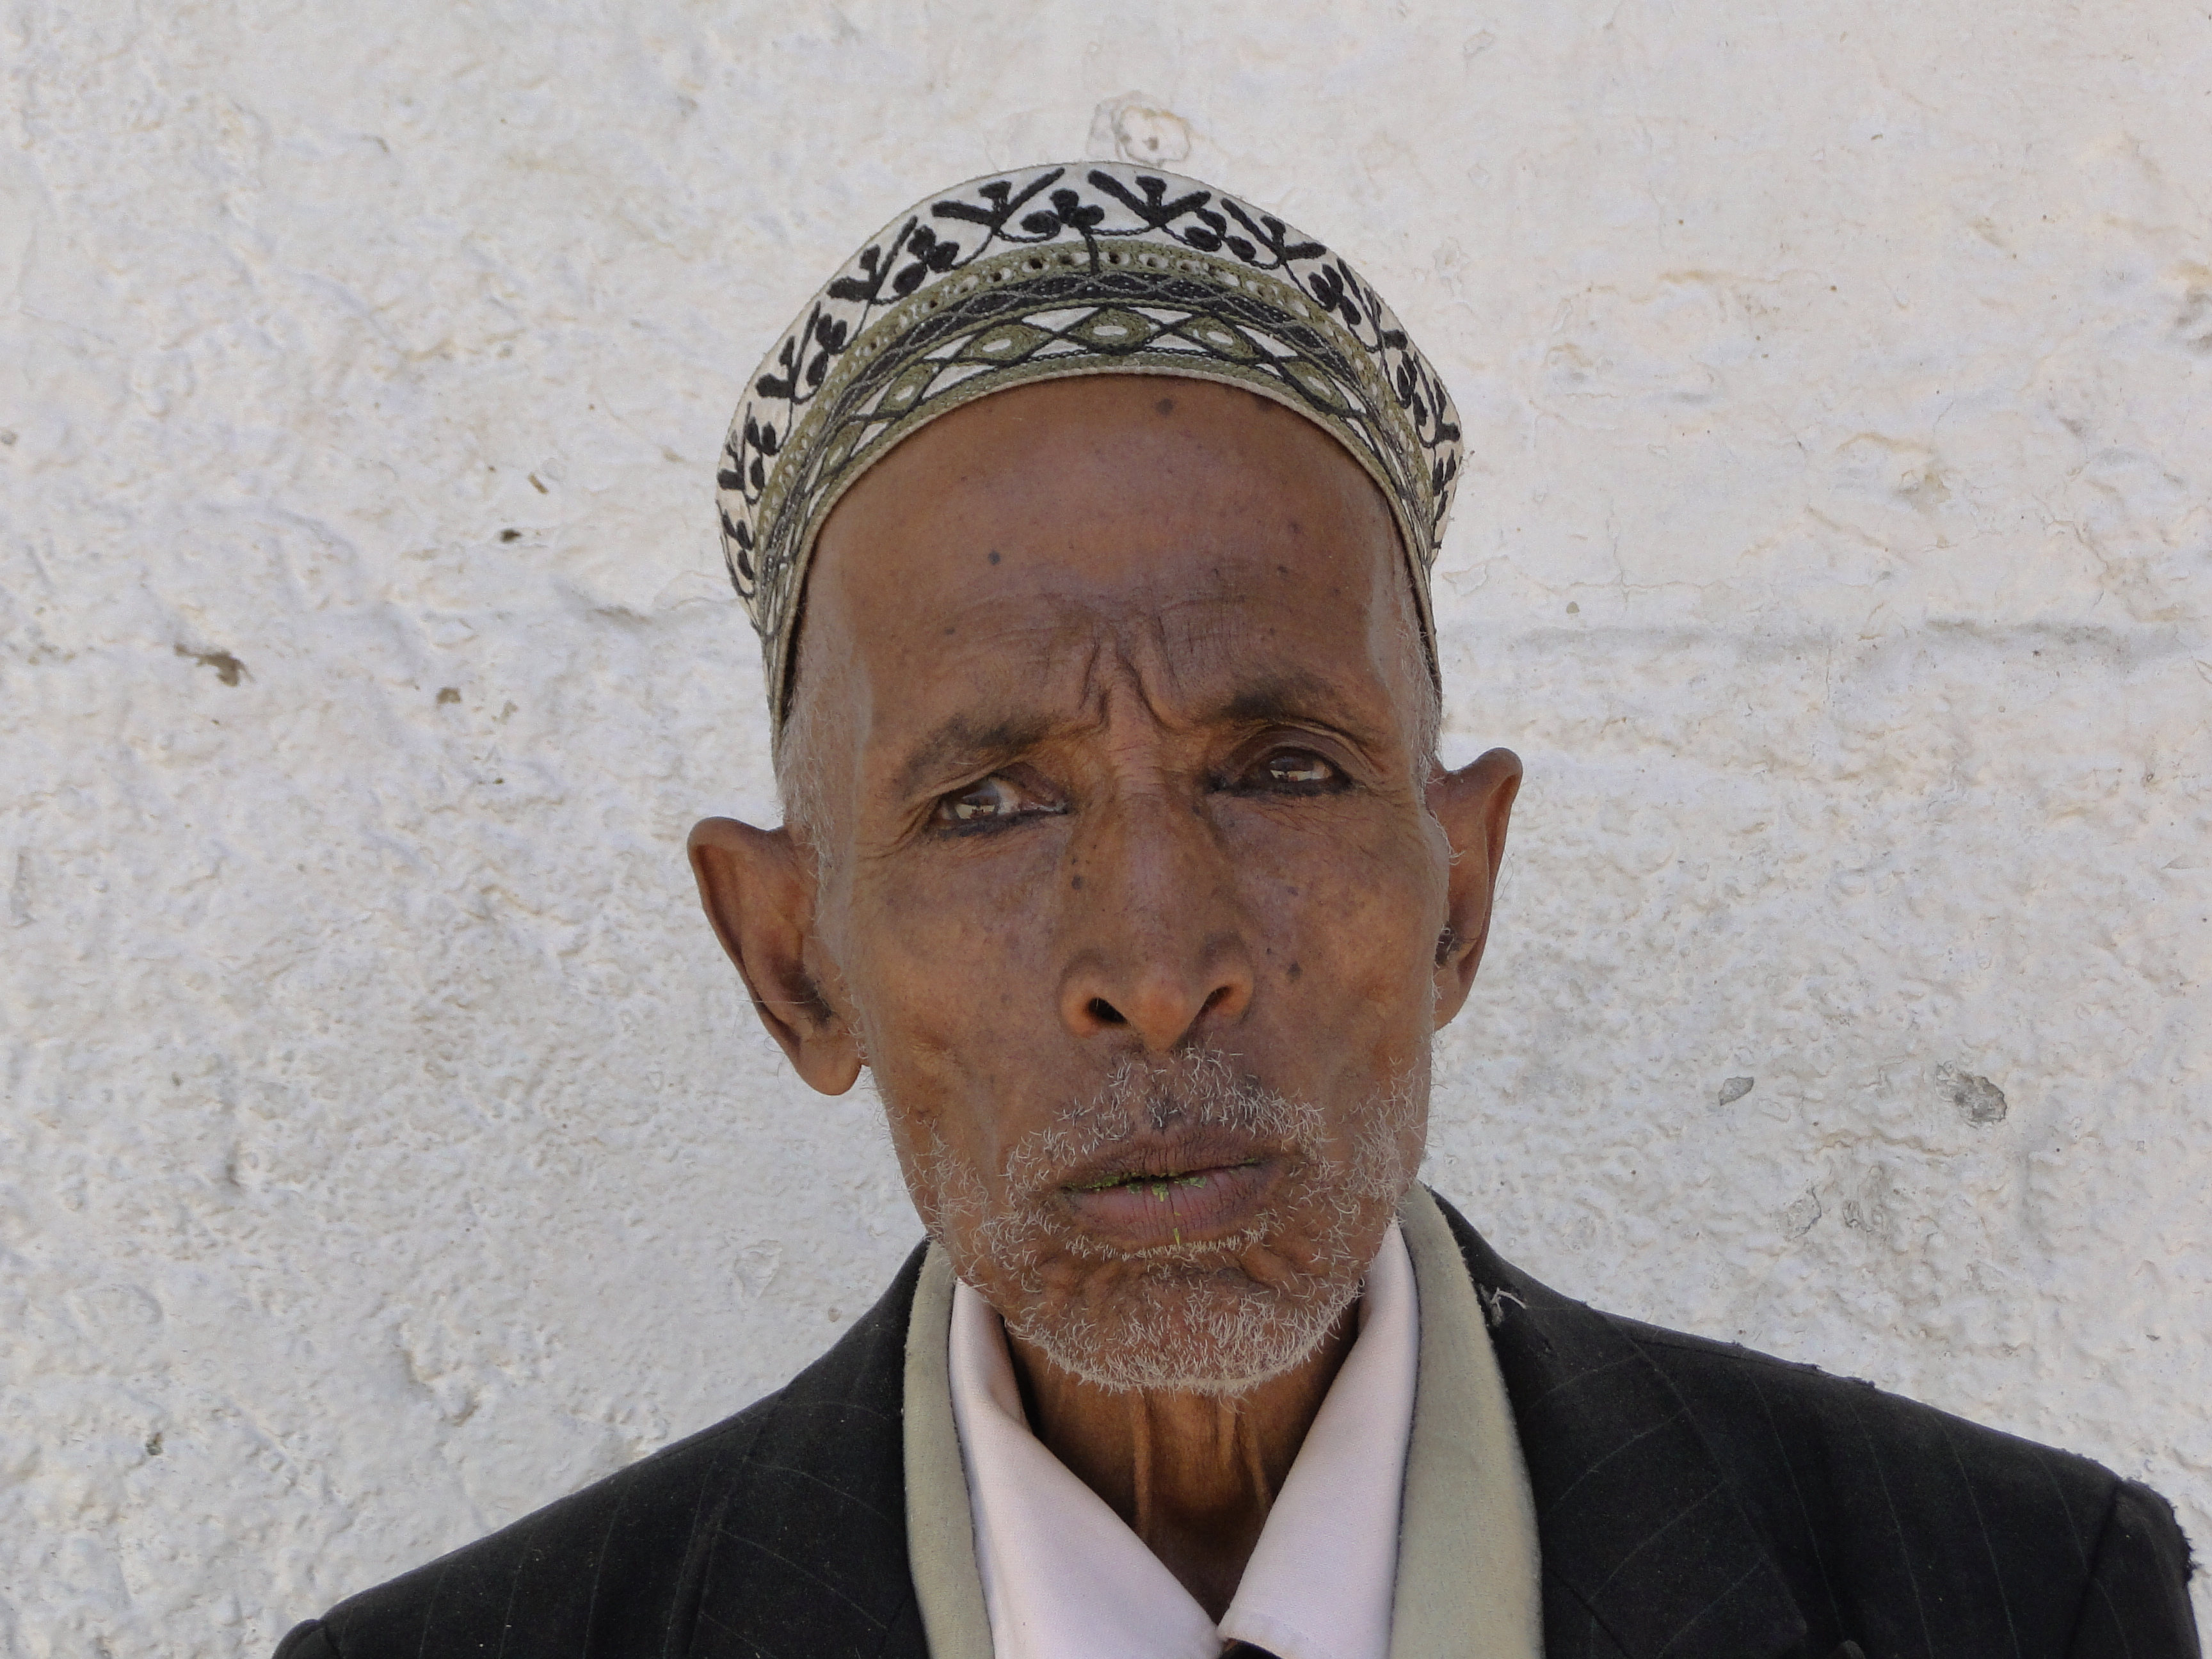 essay about chewing qat In yemen, khat is the national plant and daily habit unfortunately, its consequences are extremely negative chewing the leaves of the evergreen shrub releases an amphetamine-like stimulant though it's considered highly addictive, there is virtually no research on how it affects brain function.